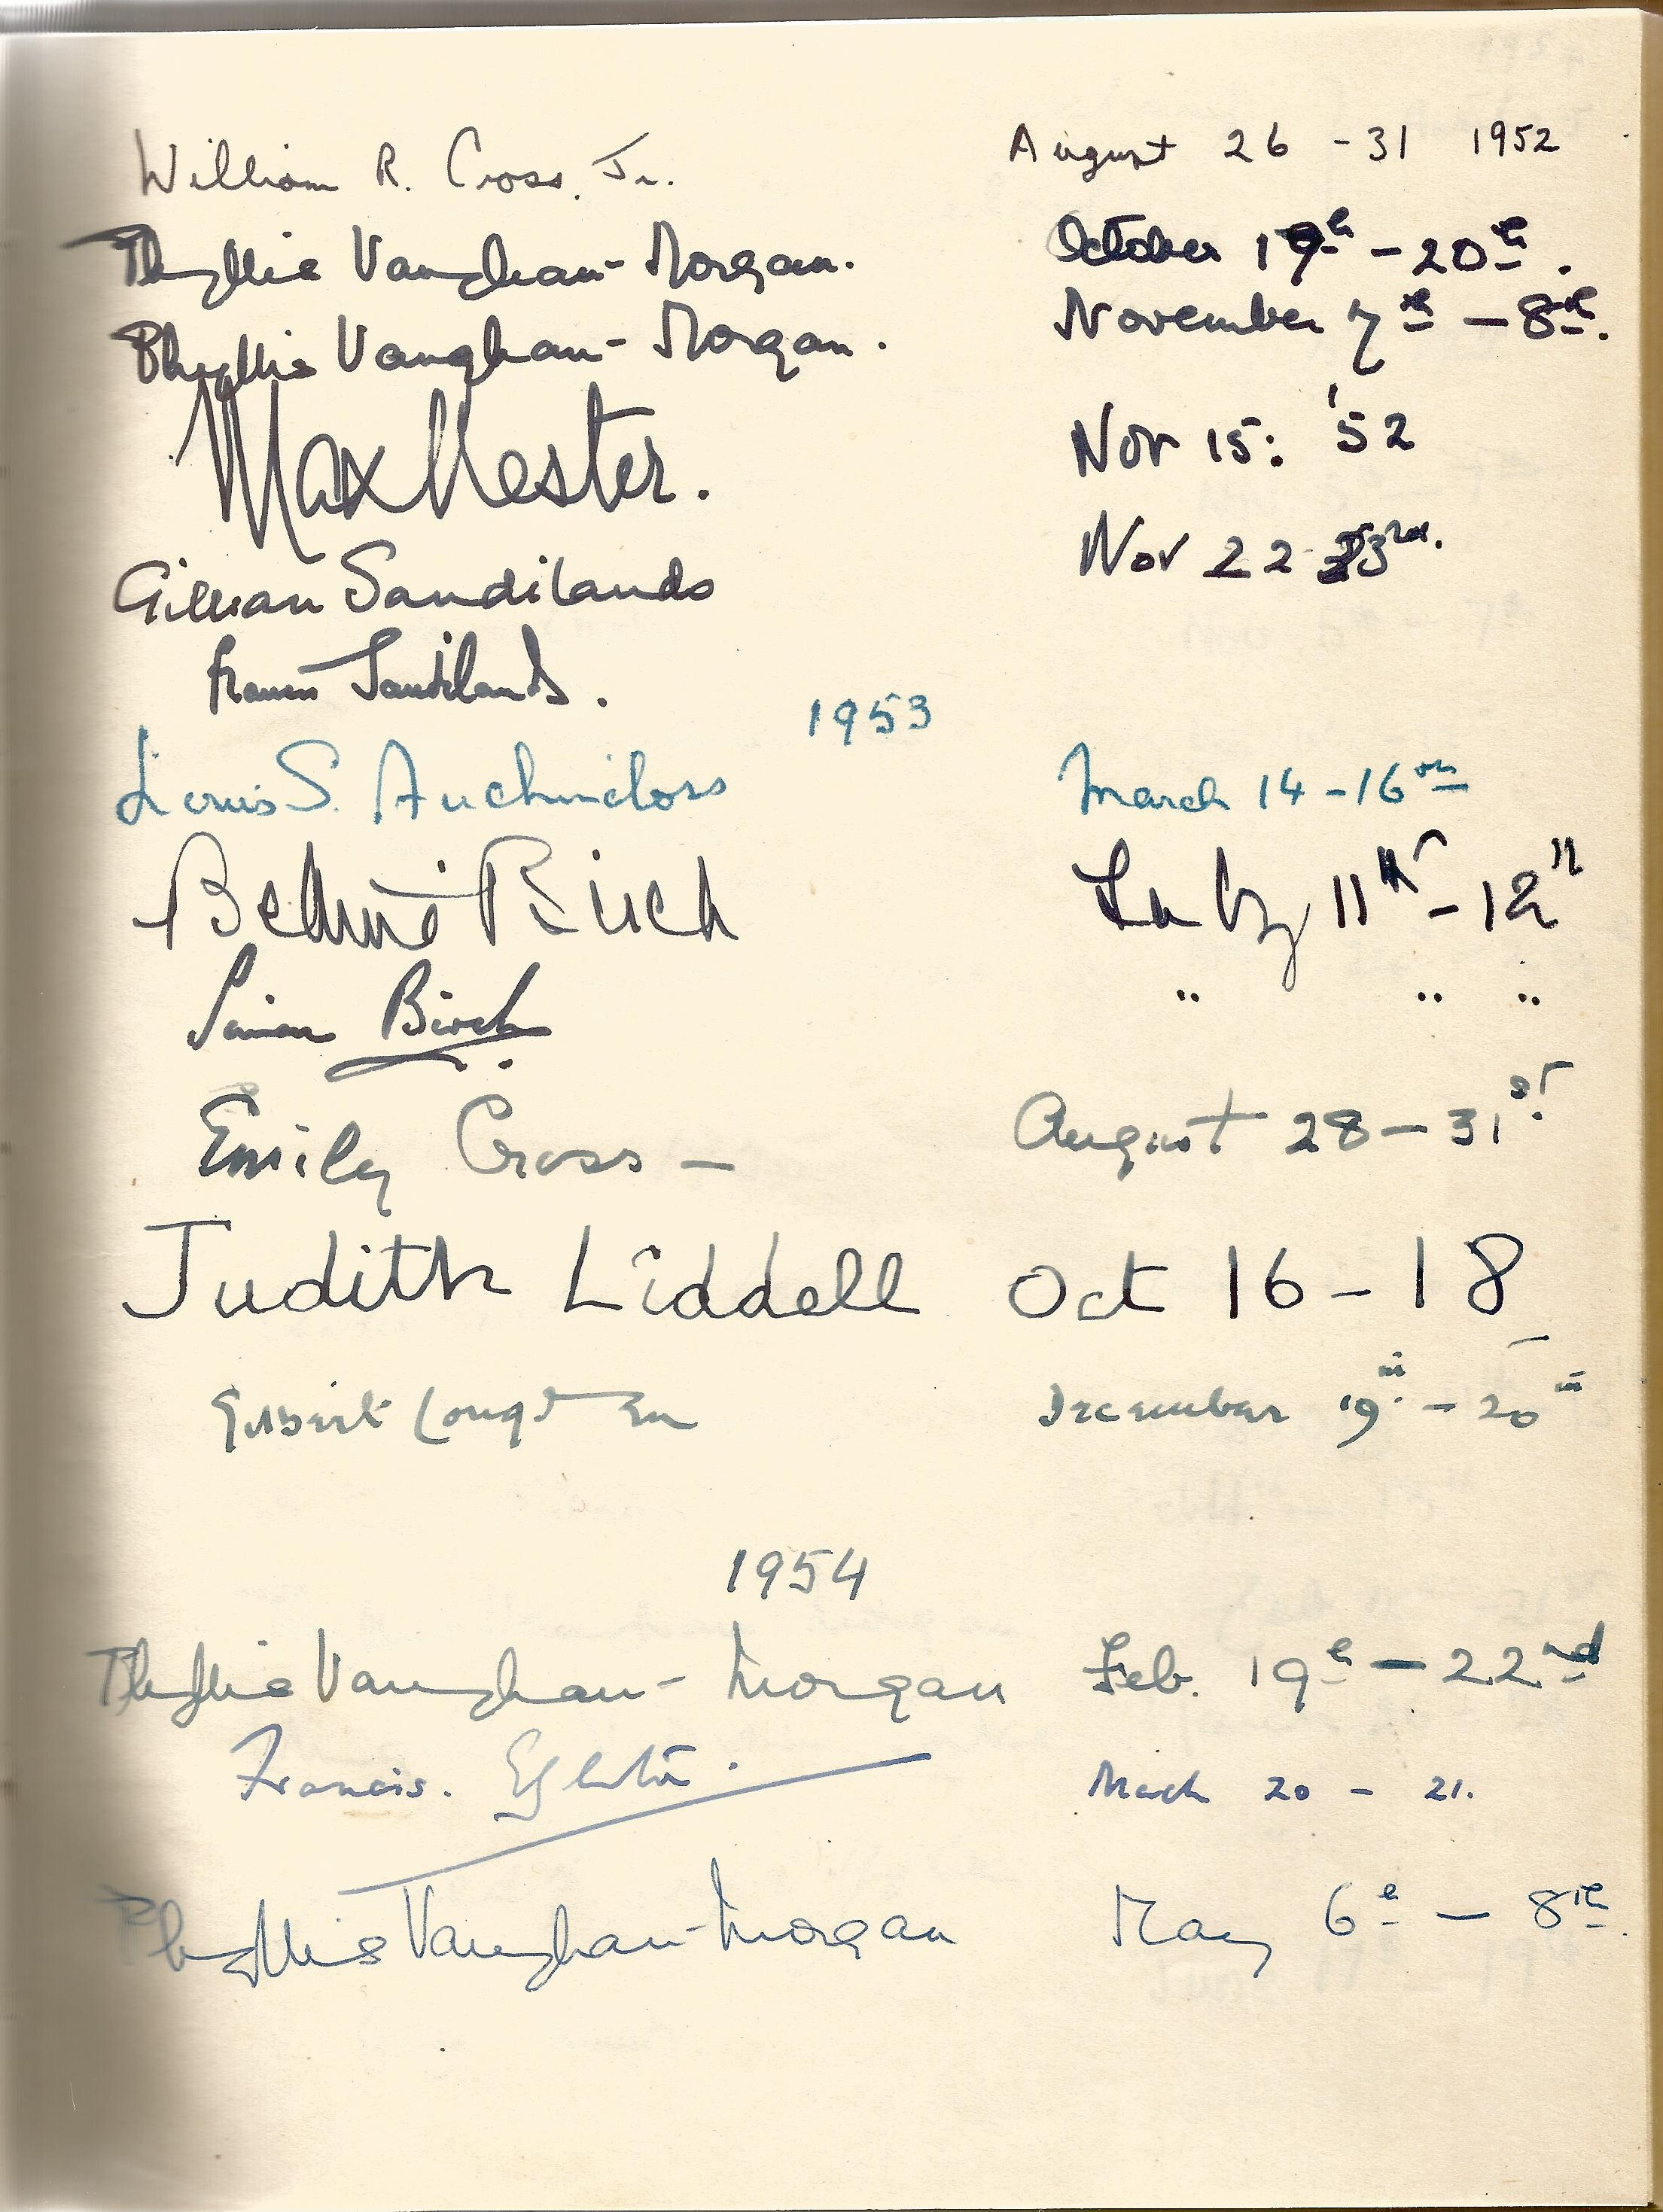 Hardback Book Expensively made visitors Book with slipcase JVM, EVM & 1949 in Gold Lettering on - Image 5 of 8